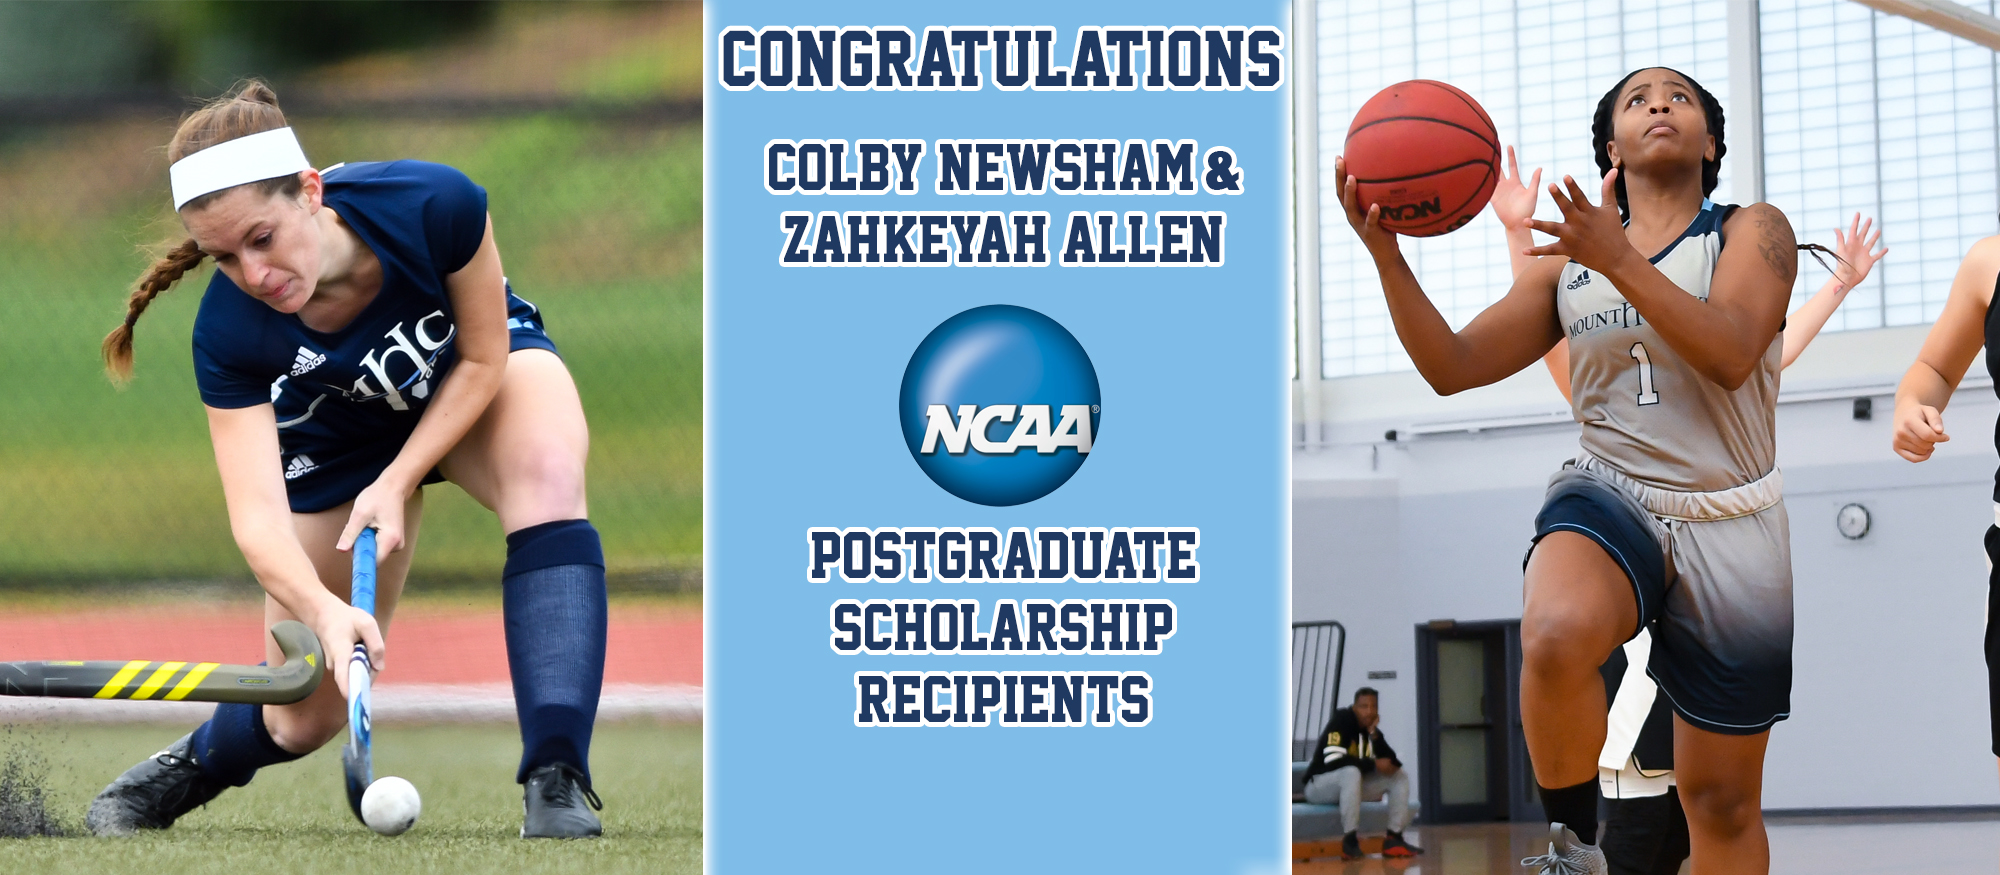 Graphic promoting field hockey's Colby Newsham and basketball's Zahkeyah Allen, both of whom received NCAA Postgraduate Scholarships.